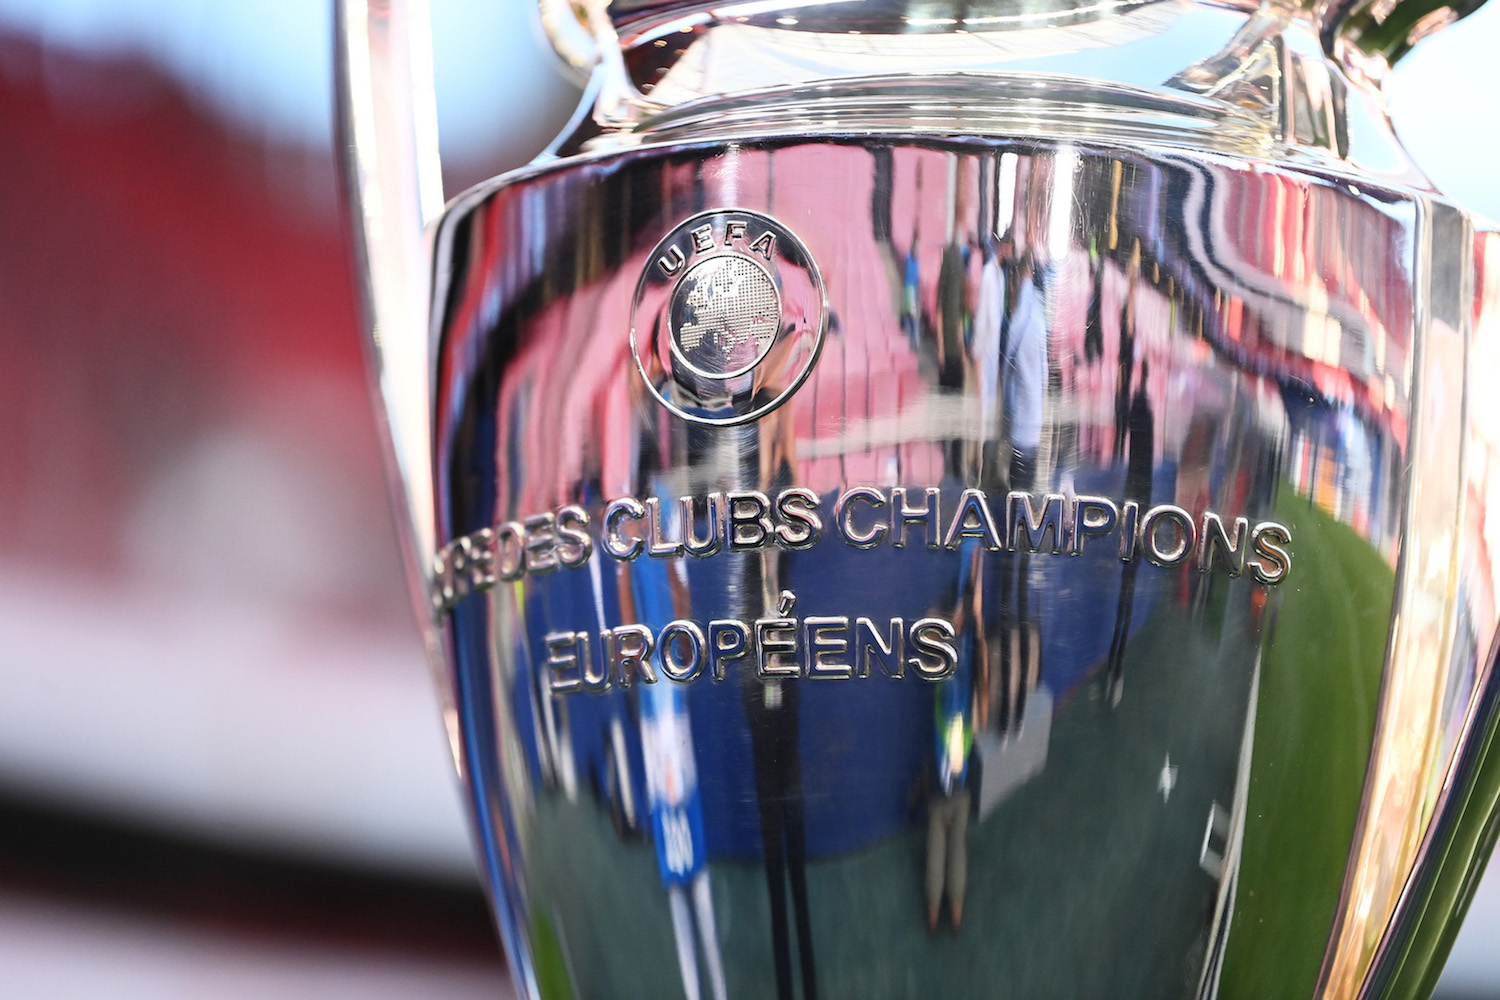 Who is the most successful club in Champions League history?